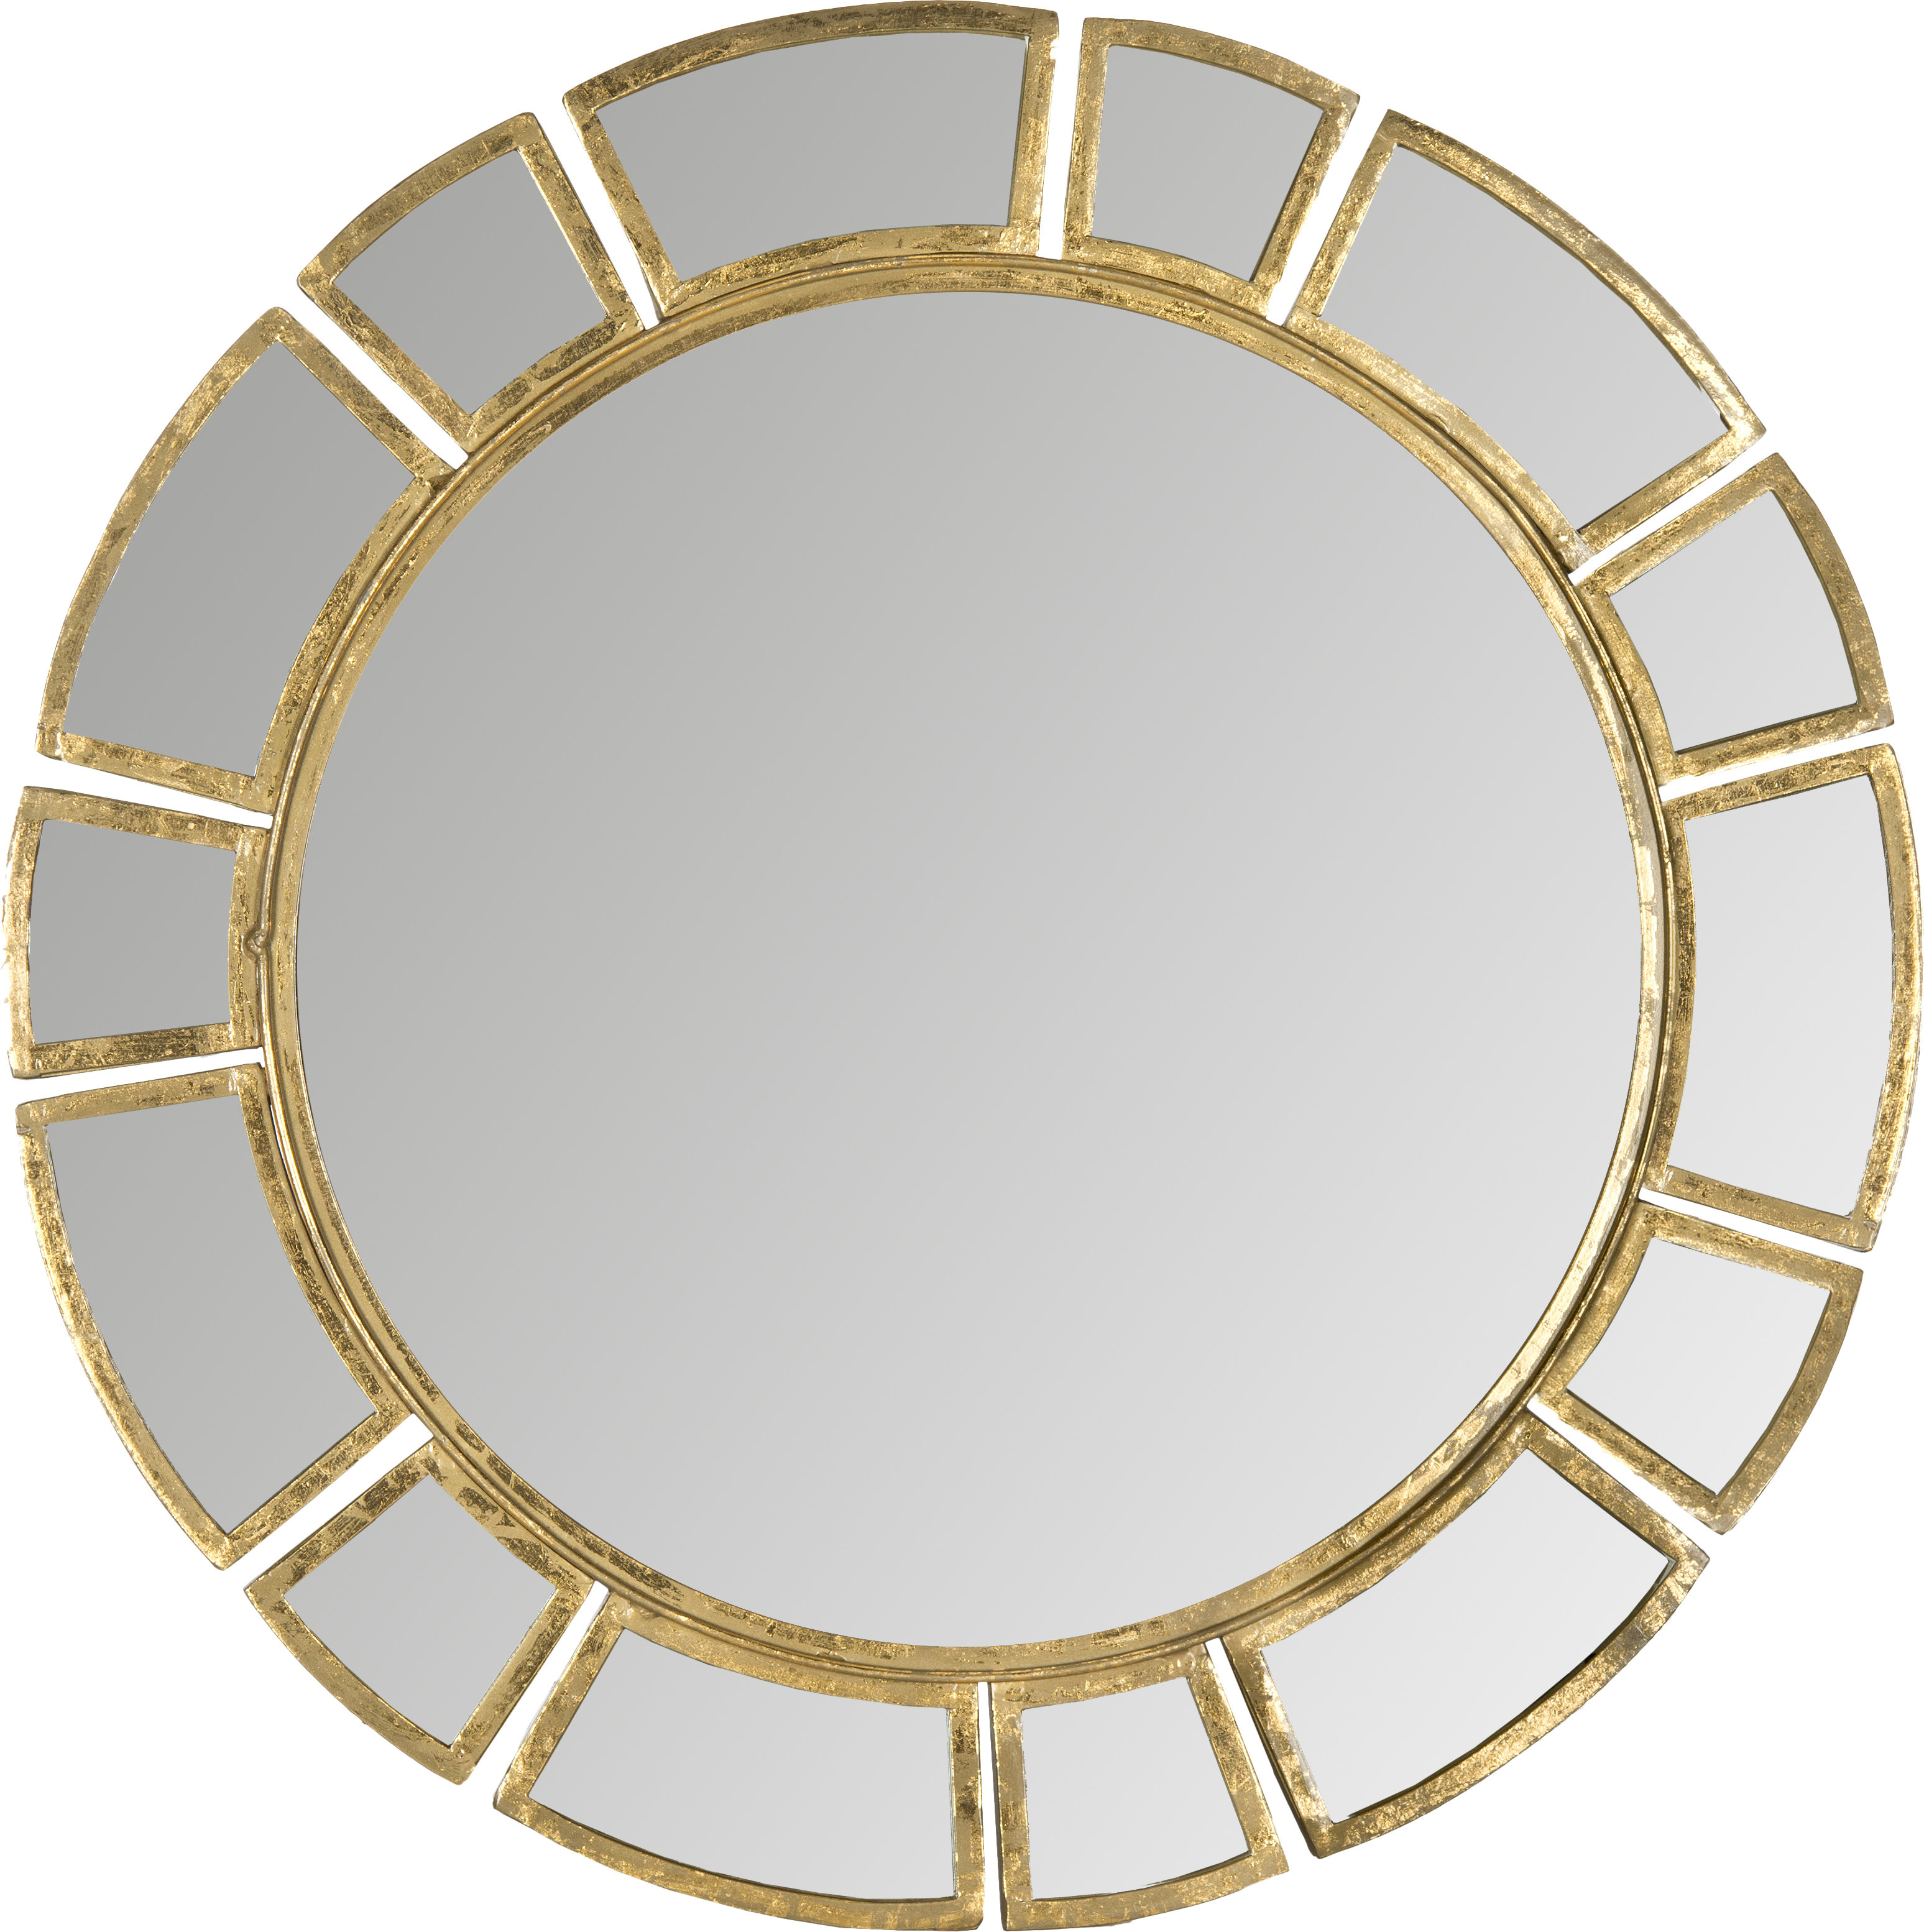 Birksgate Round Antique Gold Patina Sunburst Wall Mirror In Tata Openwork Round Wall Mirrors (Image 5 of 20)